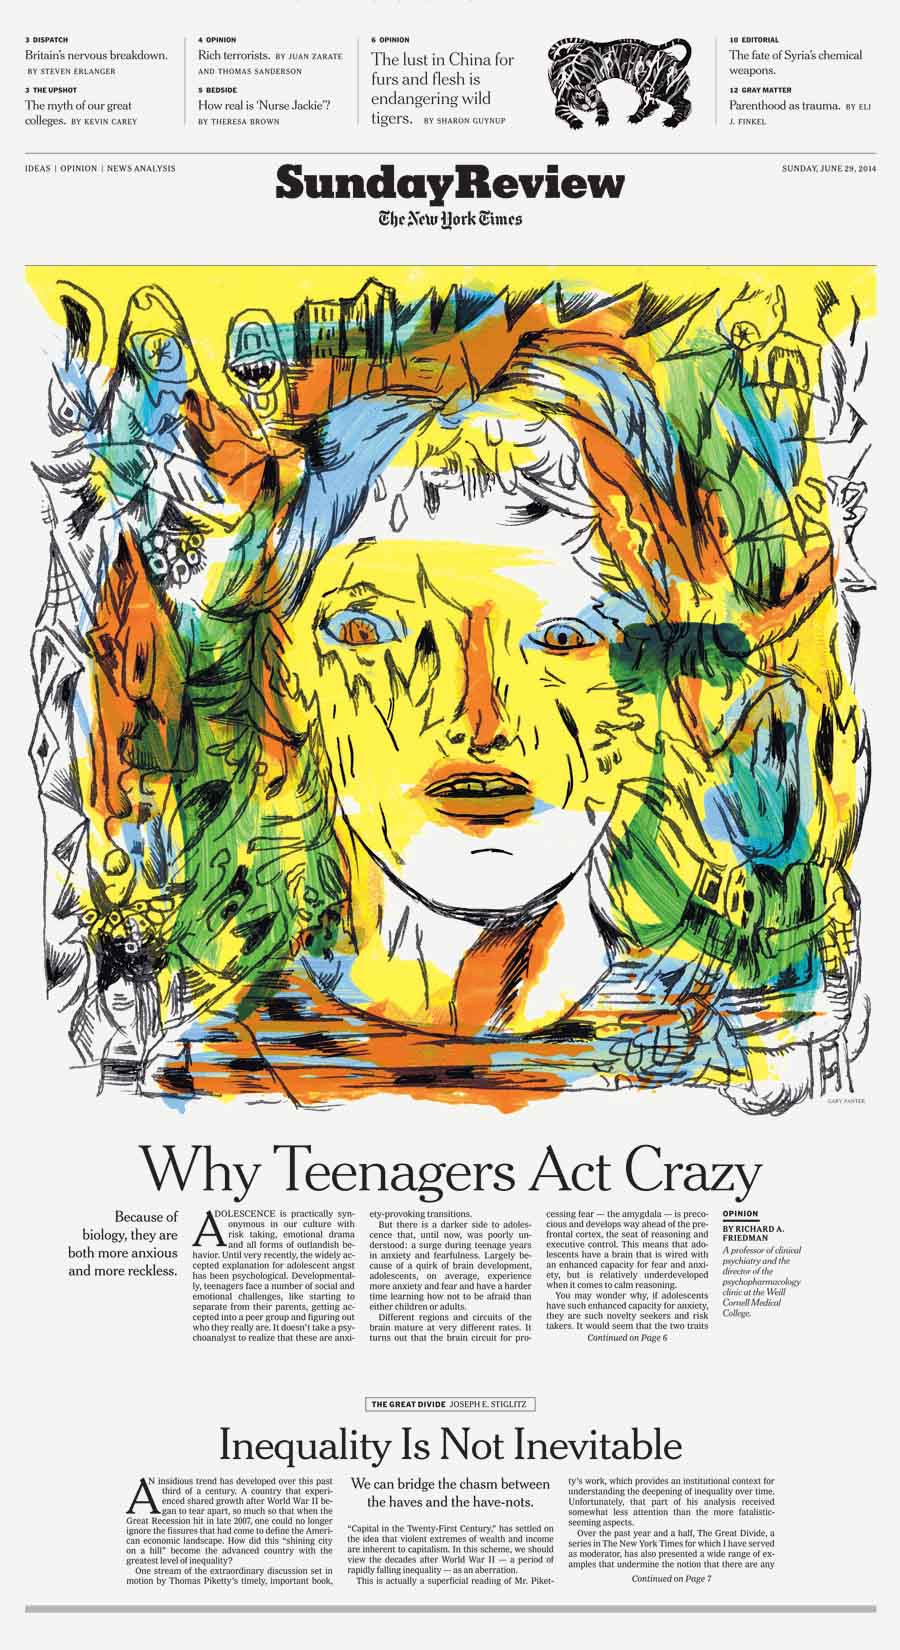 Why Teenagers Act Crazy